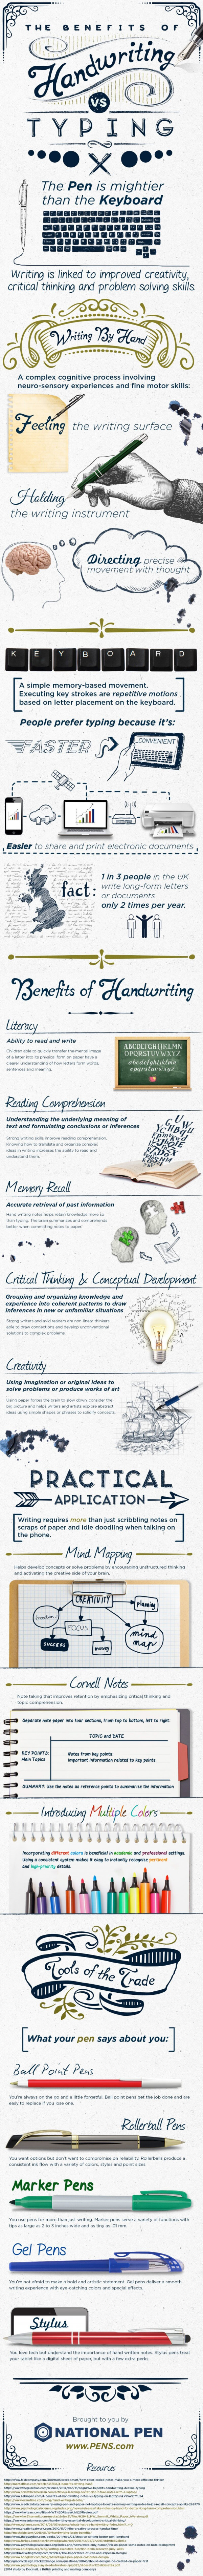 Benefits of Handwriting vs.  Typing